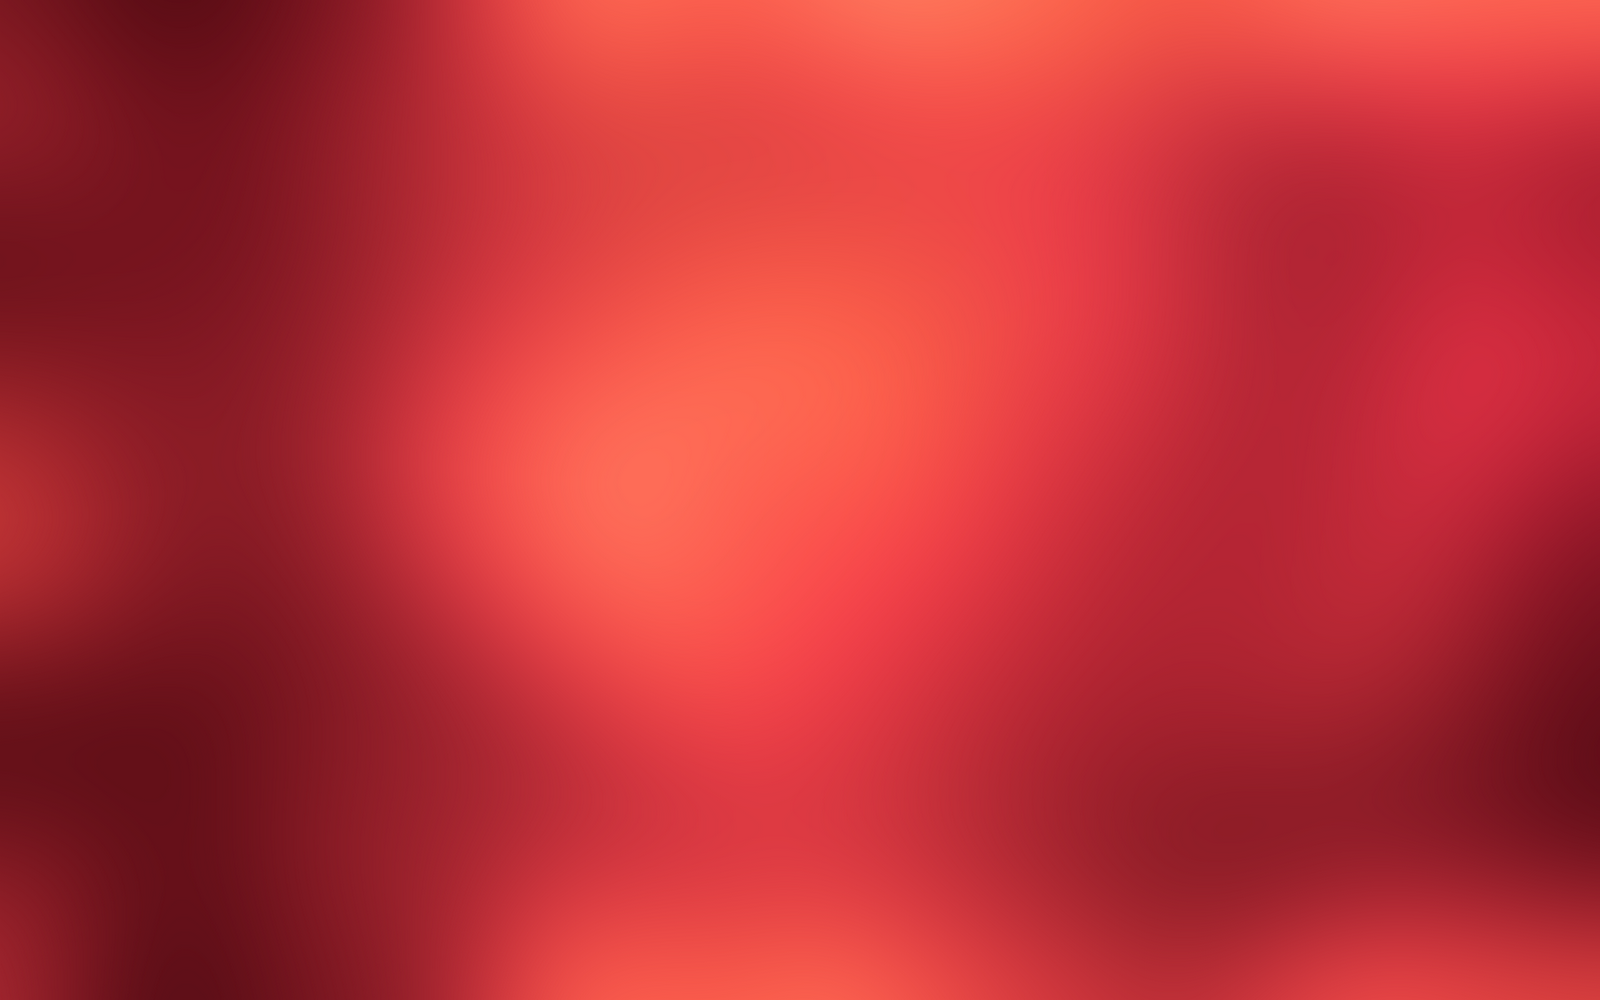 ... best-top-desktop-red-wallpapers-red-wallpaper-red-background-hd-33.png